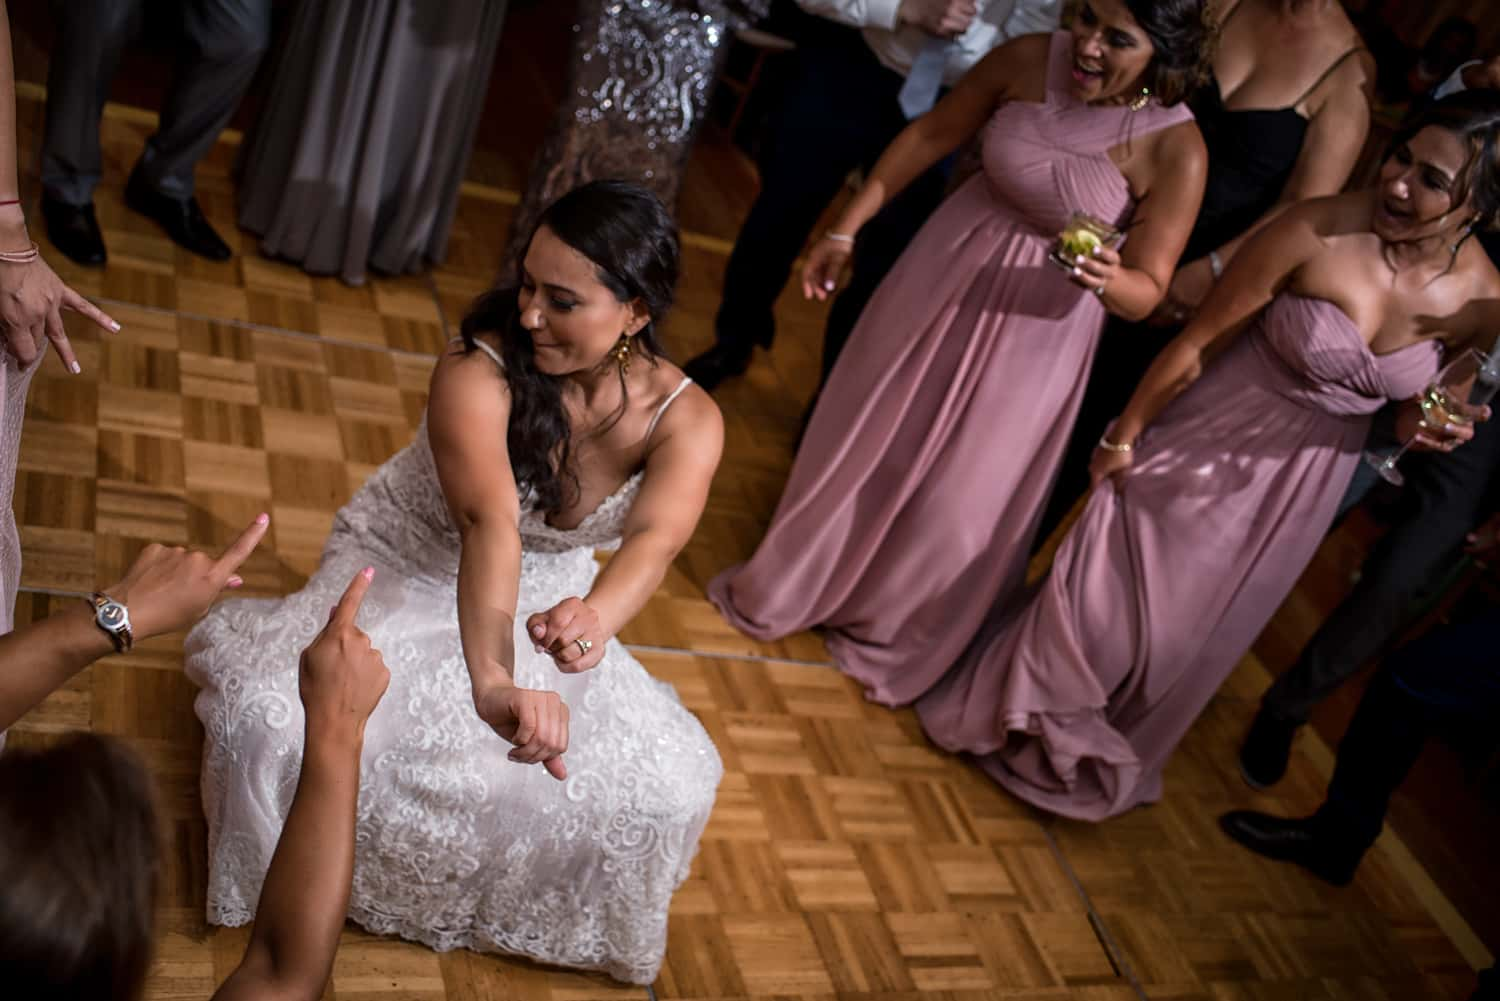 Bride dropping her booty to the ground during her wedding party